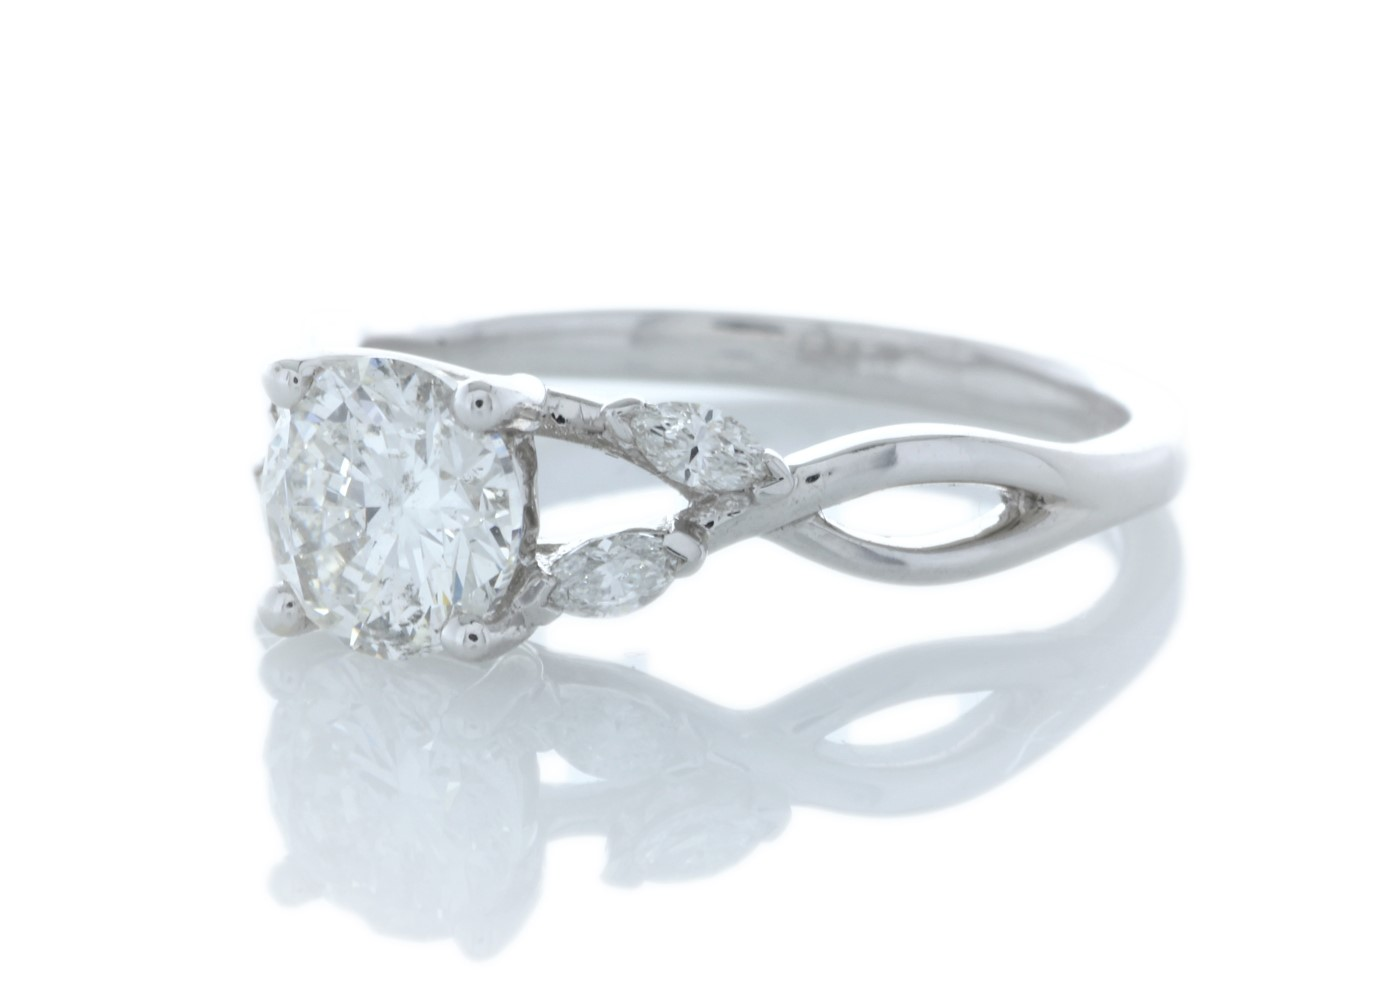 Lot 18 - 18ct White Gold Single Stone Diamond Ring With Marquise Set Shoulders (1.00) 1.16 Carats